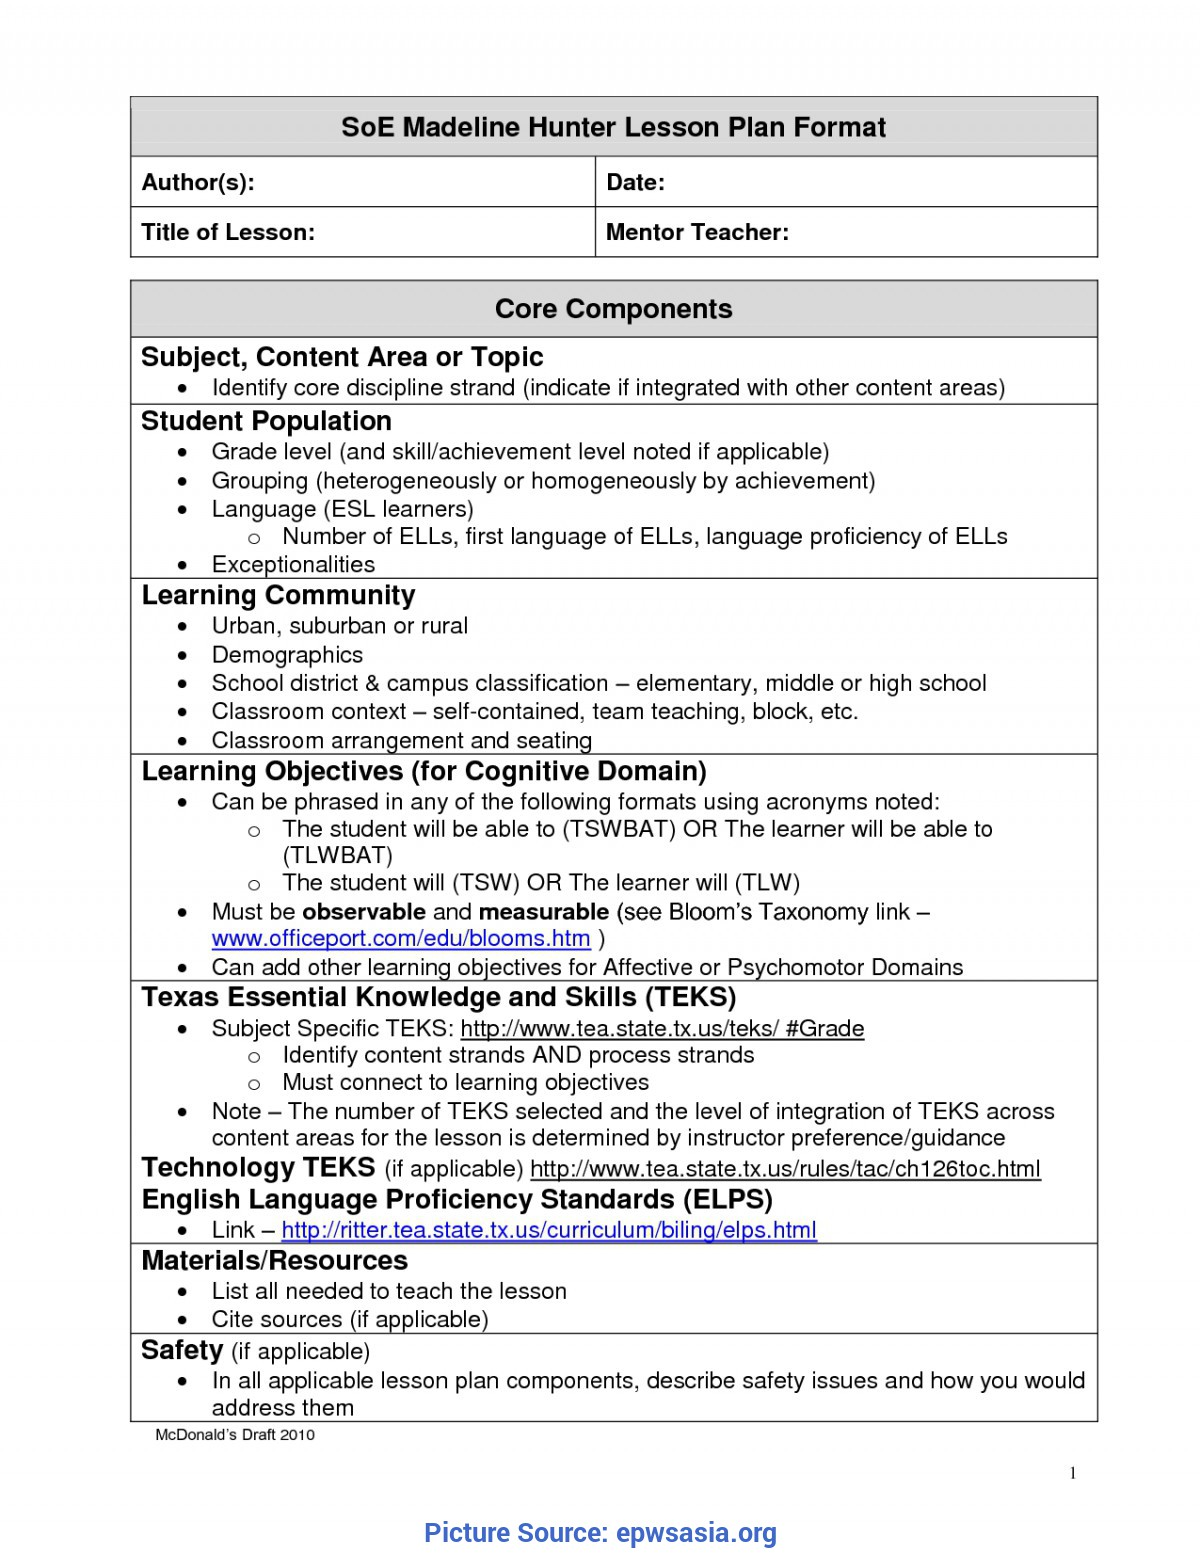 Great Free Downloadable Madeline Hunter Lesson Plan Template Madeline Hunter Lesson Plan Template | Best Business Templat